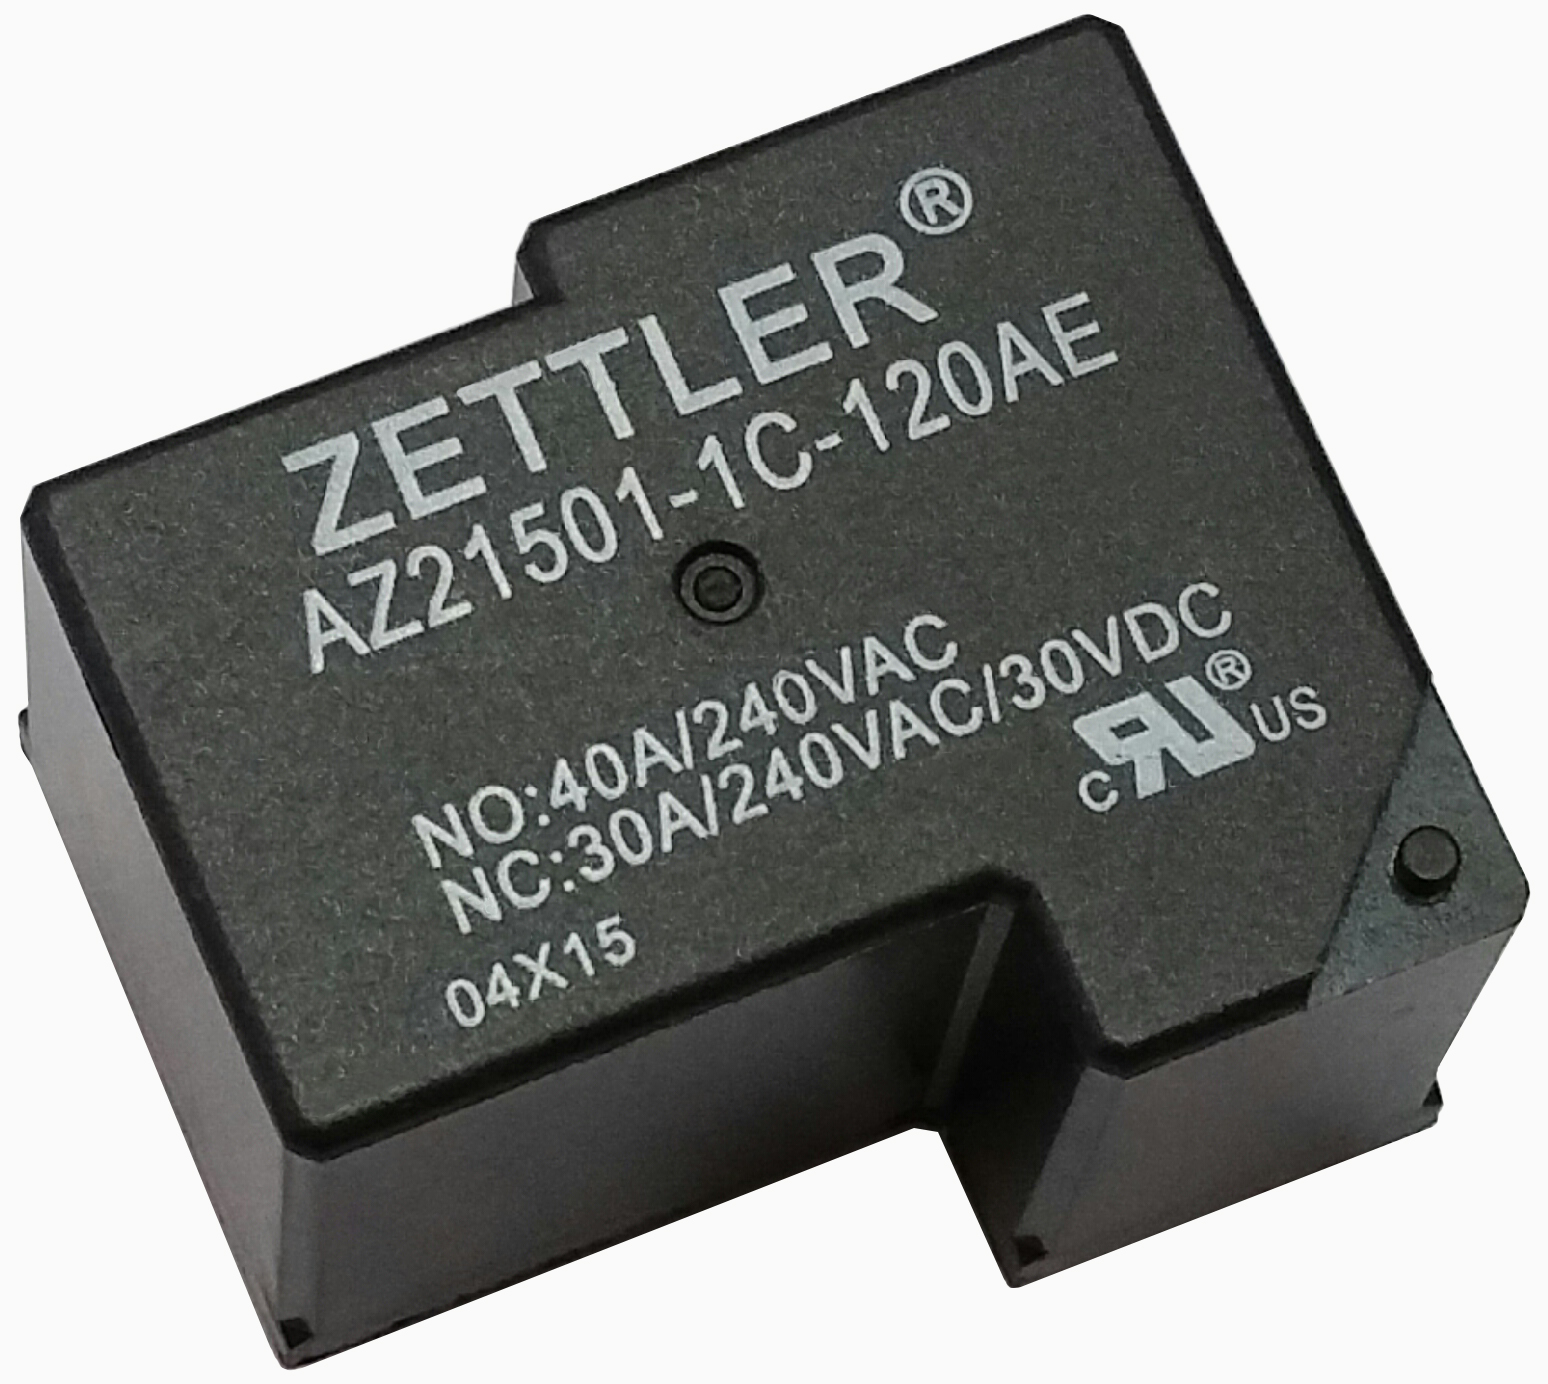 Press Releases American Zettler Inc Spdt 12v Sugar Cube Relay Power Relays Component Solutions For Pool Pump And Spa Control Applications